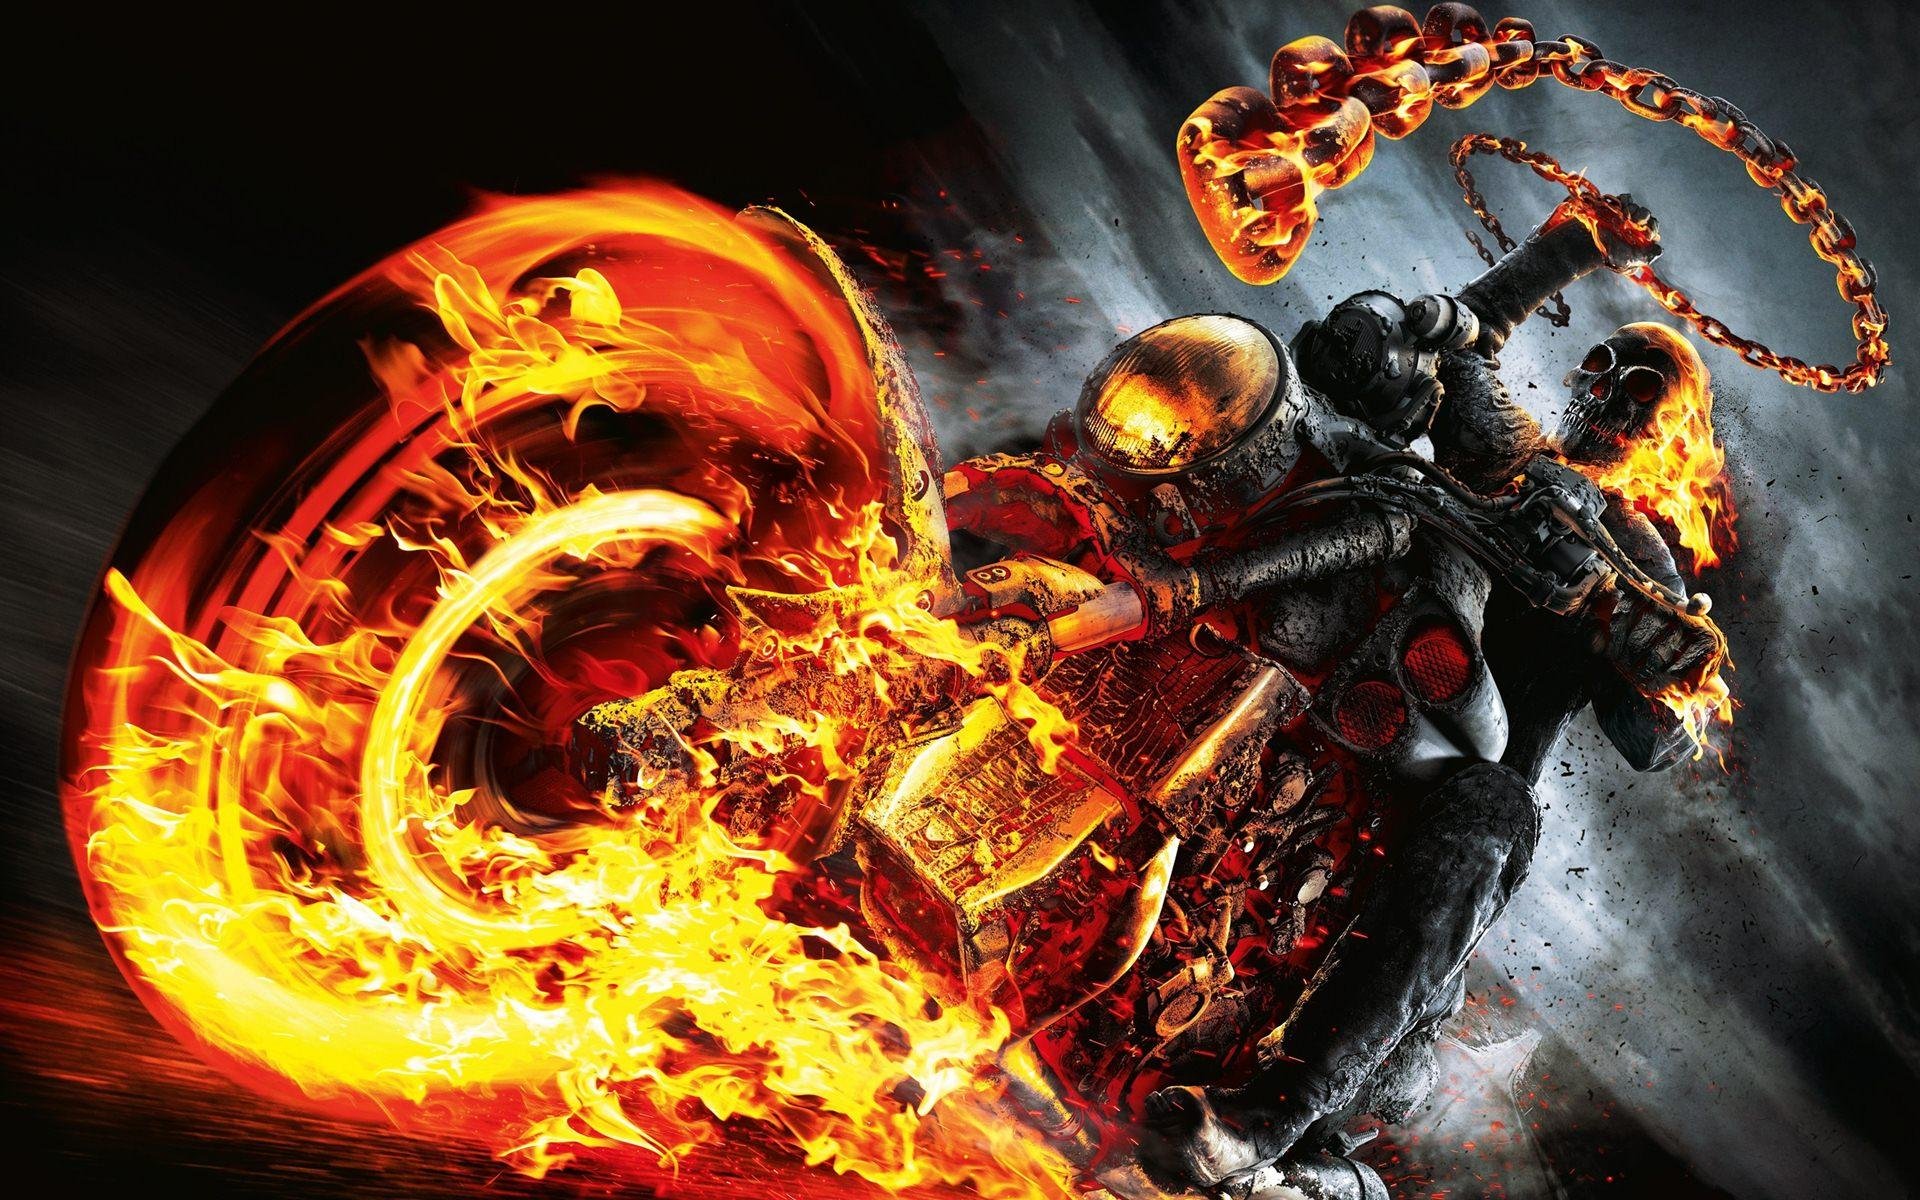 Ghost Rider 2 Wallpapers (44 Wallpapers) - Adorable Wallpapers